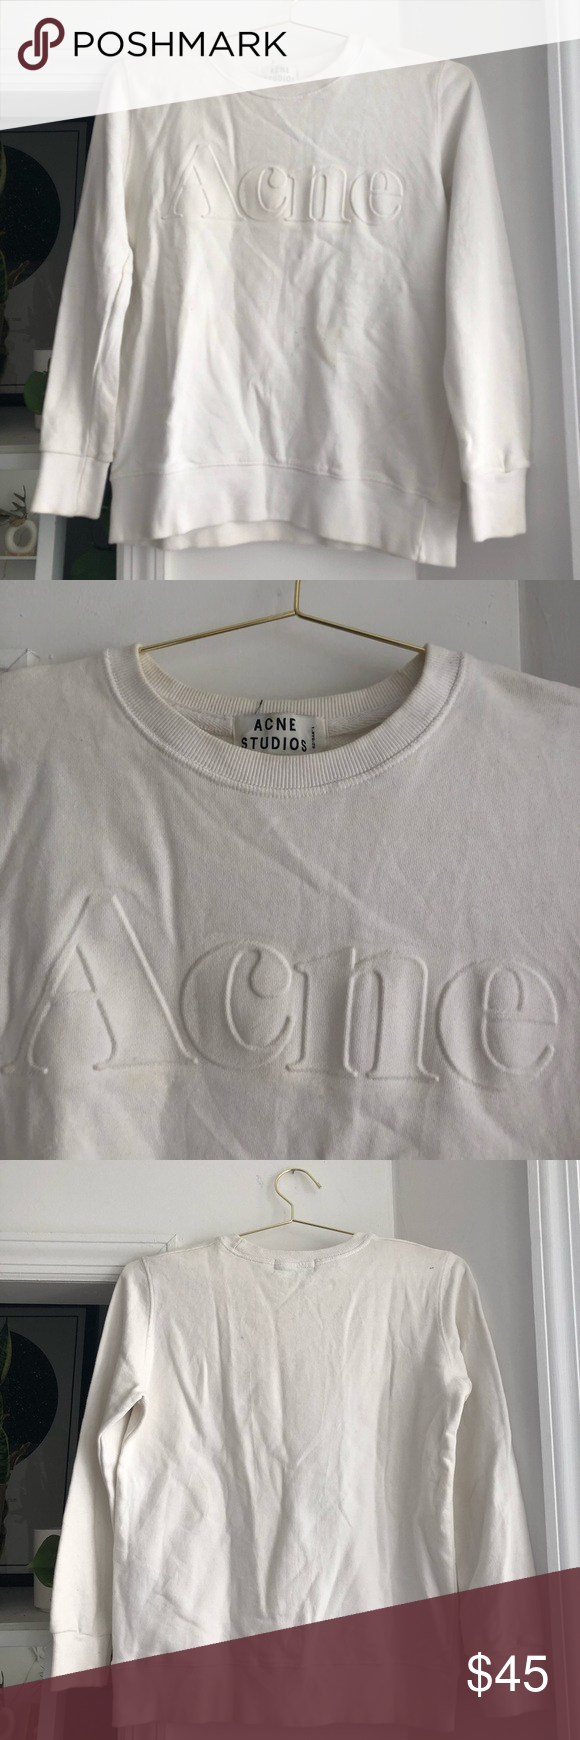 Acne Spell Out White Pullover Sweatshirt Sweatshirts Pullover Sweatshirt White Pullovers [ 1740 x 580 Pixel ]